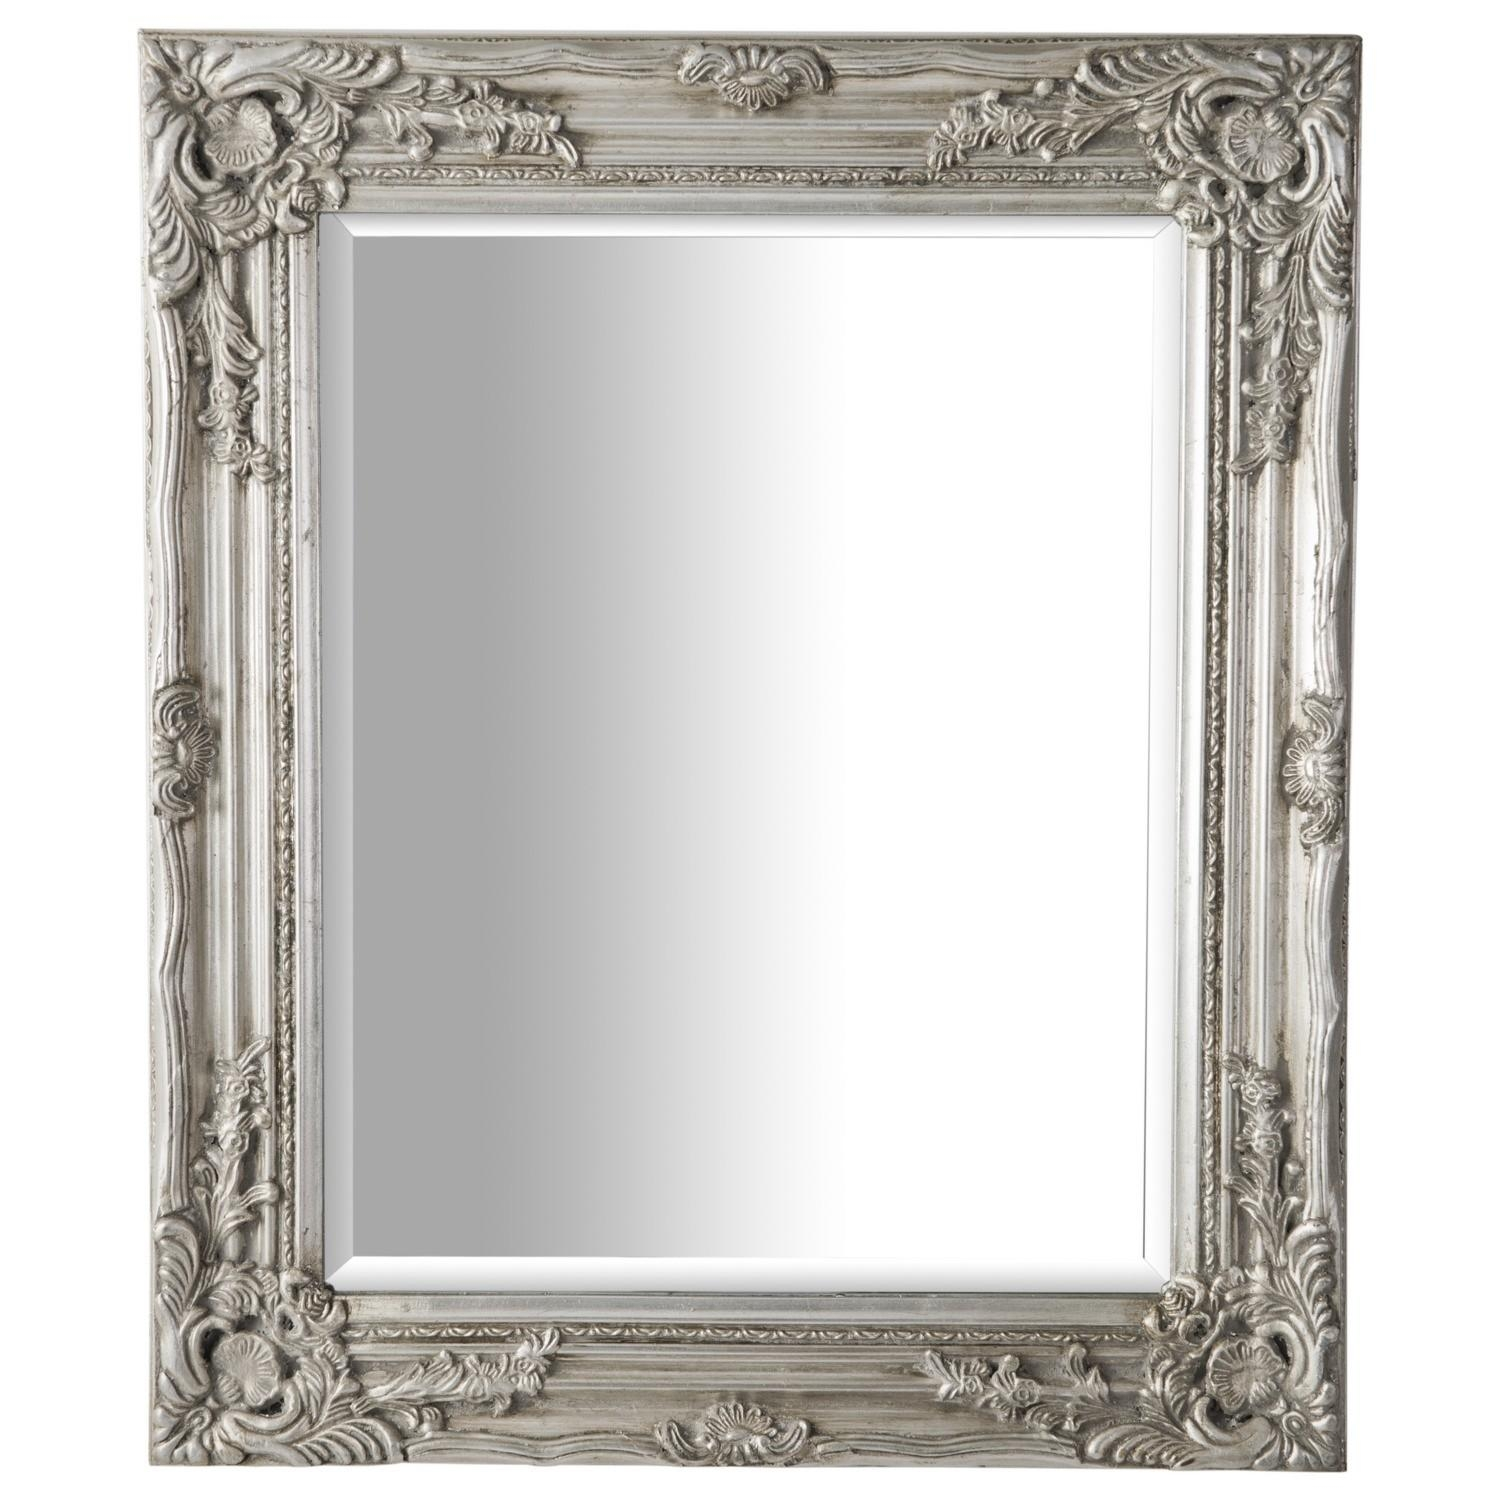 Antique Ornate Mirror Silver Within Ornamental Mirror (Image 3 of 20)